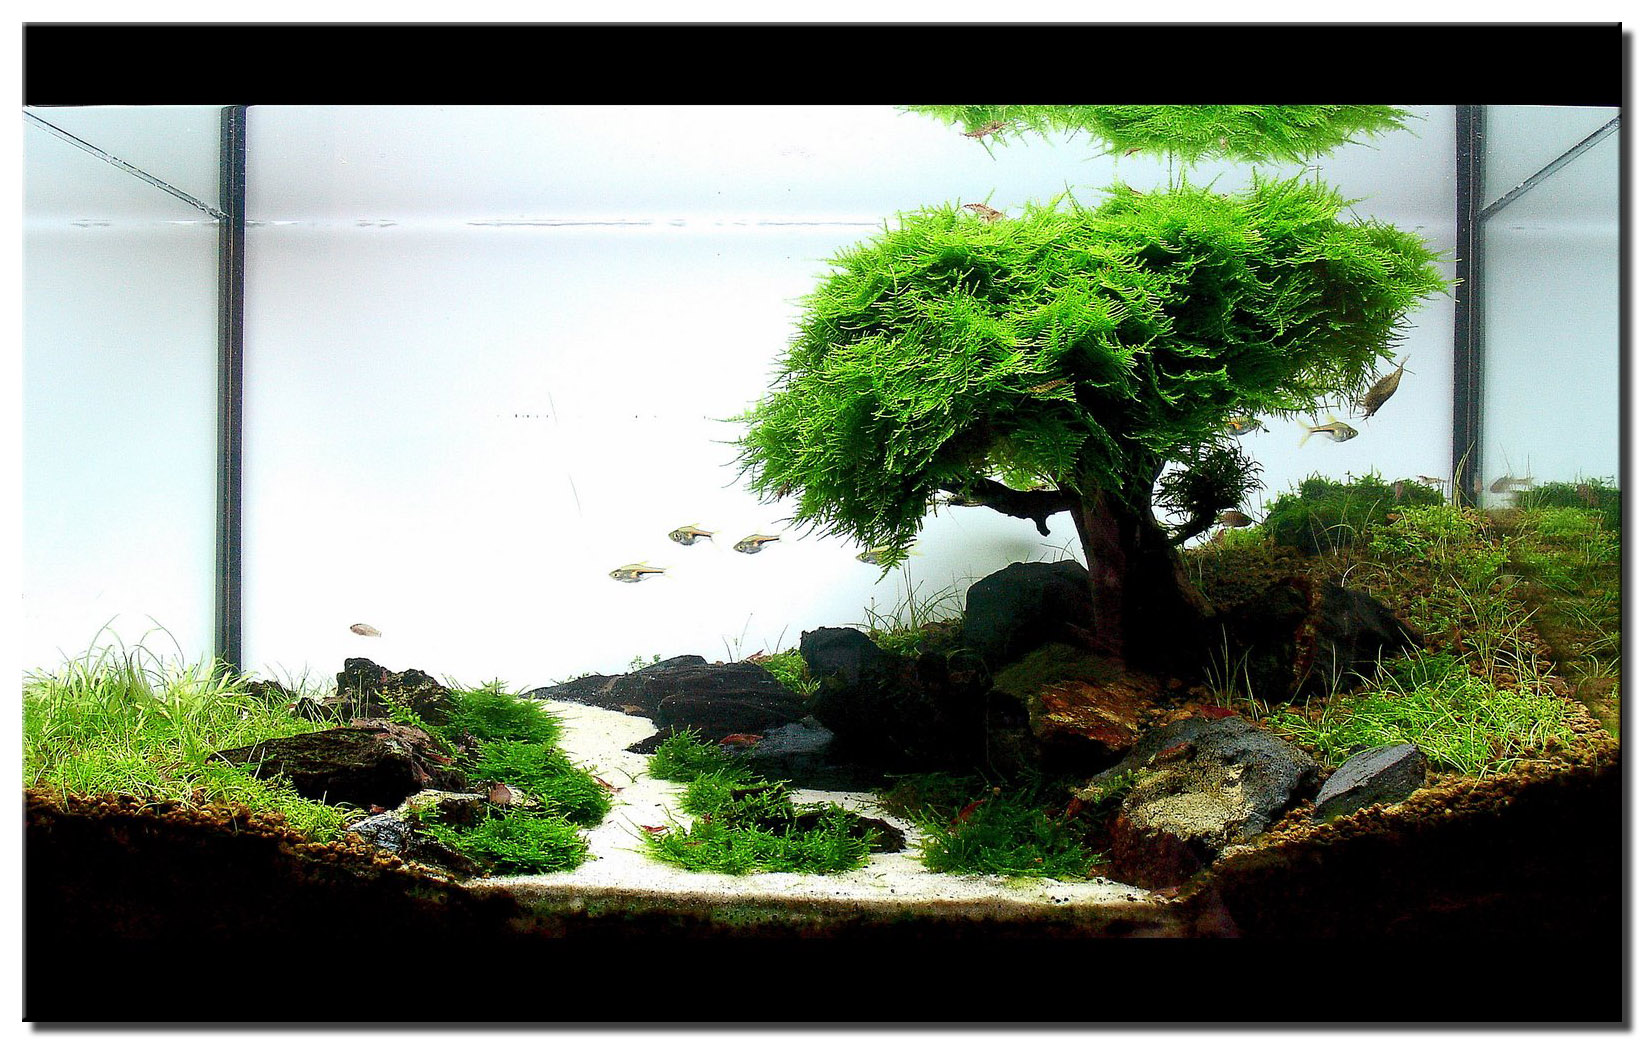 Aquascape of the month september 2008 pinheiro manso aquascaping world forum - Gallery aquascape ...